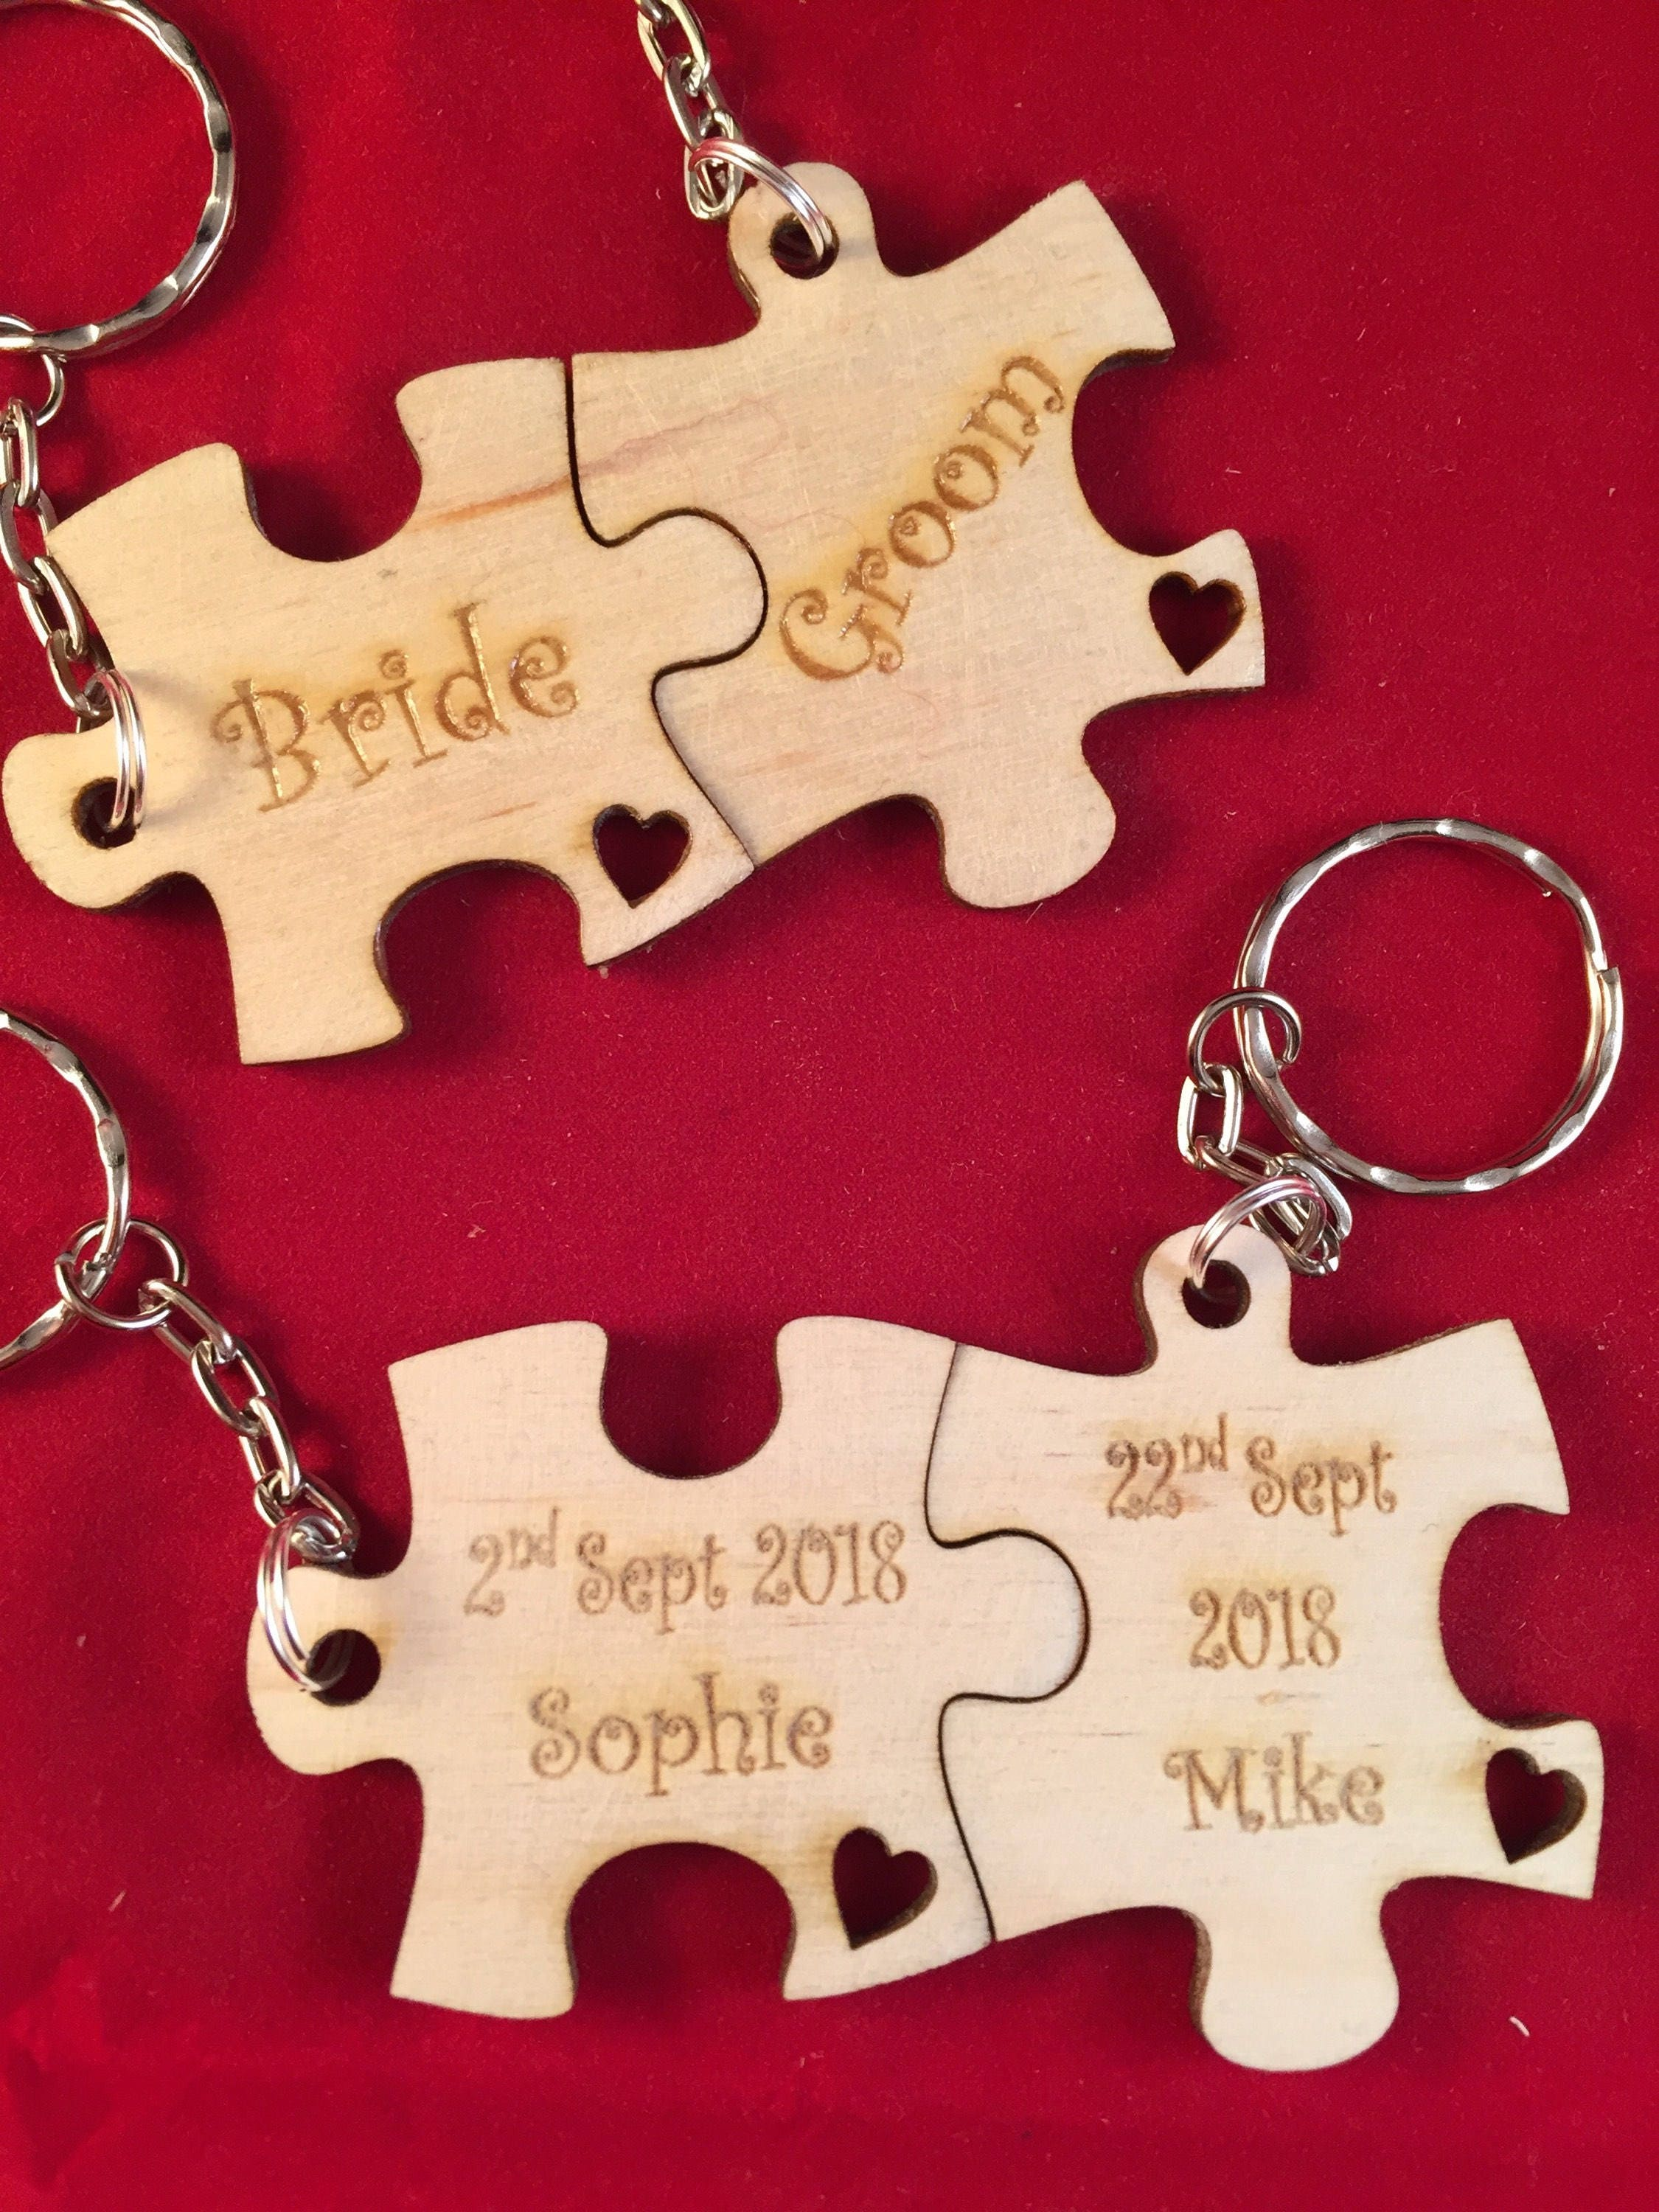 Personalised jigsaw piece keyring gift for bride & groom | Etsy